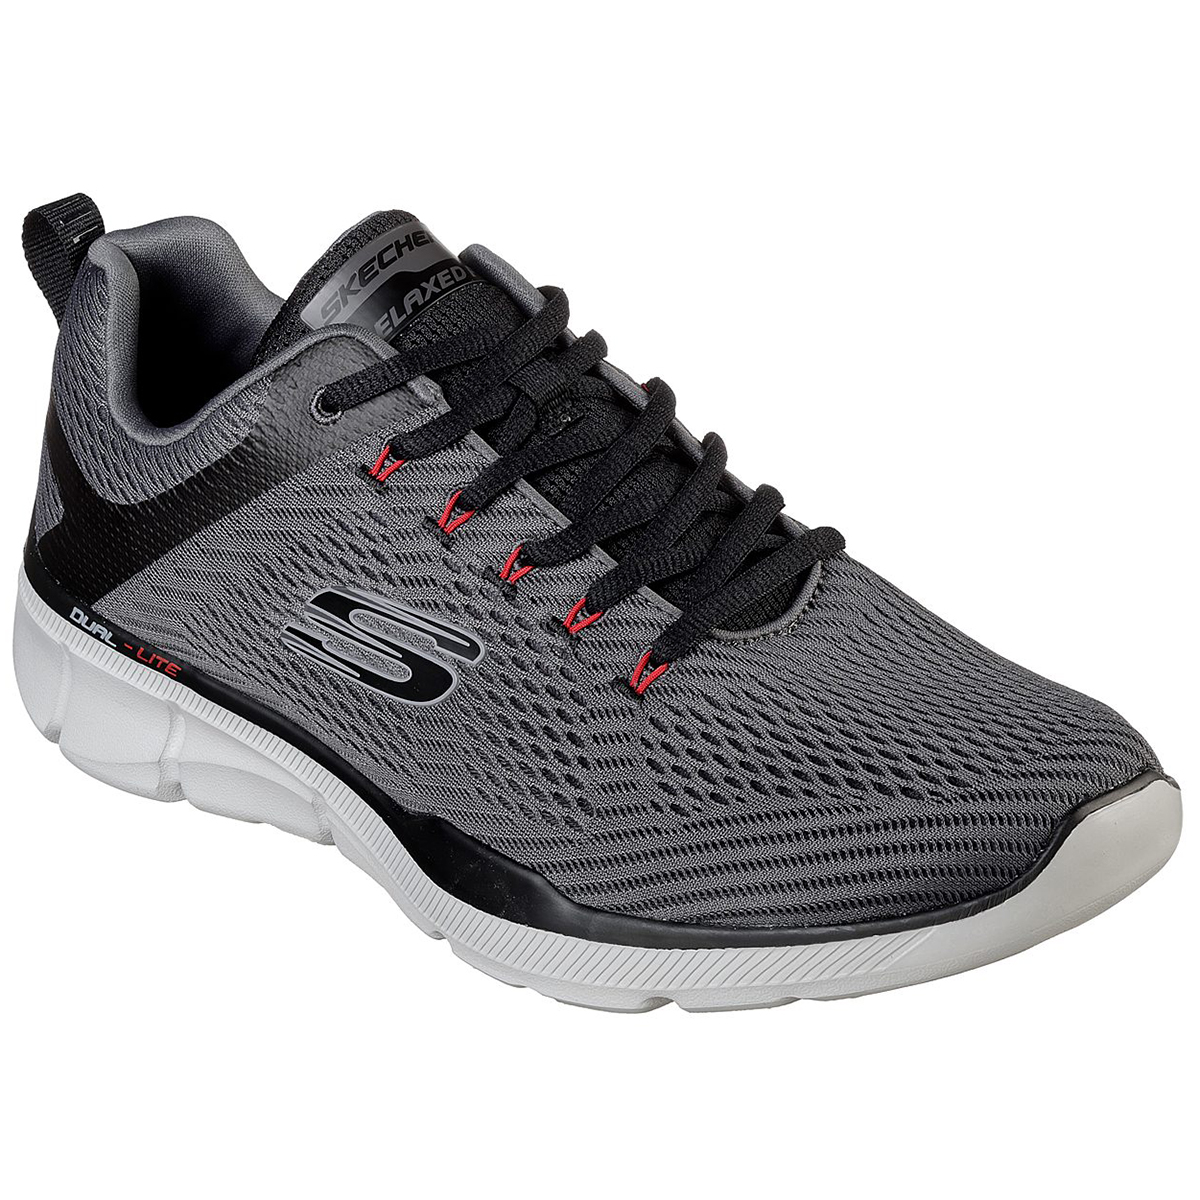 Skechers Men's Relaxed Fit: Equalizer 3.0 Sneakers, Extra Wide - Black, 10